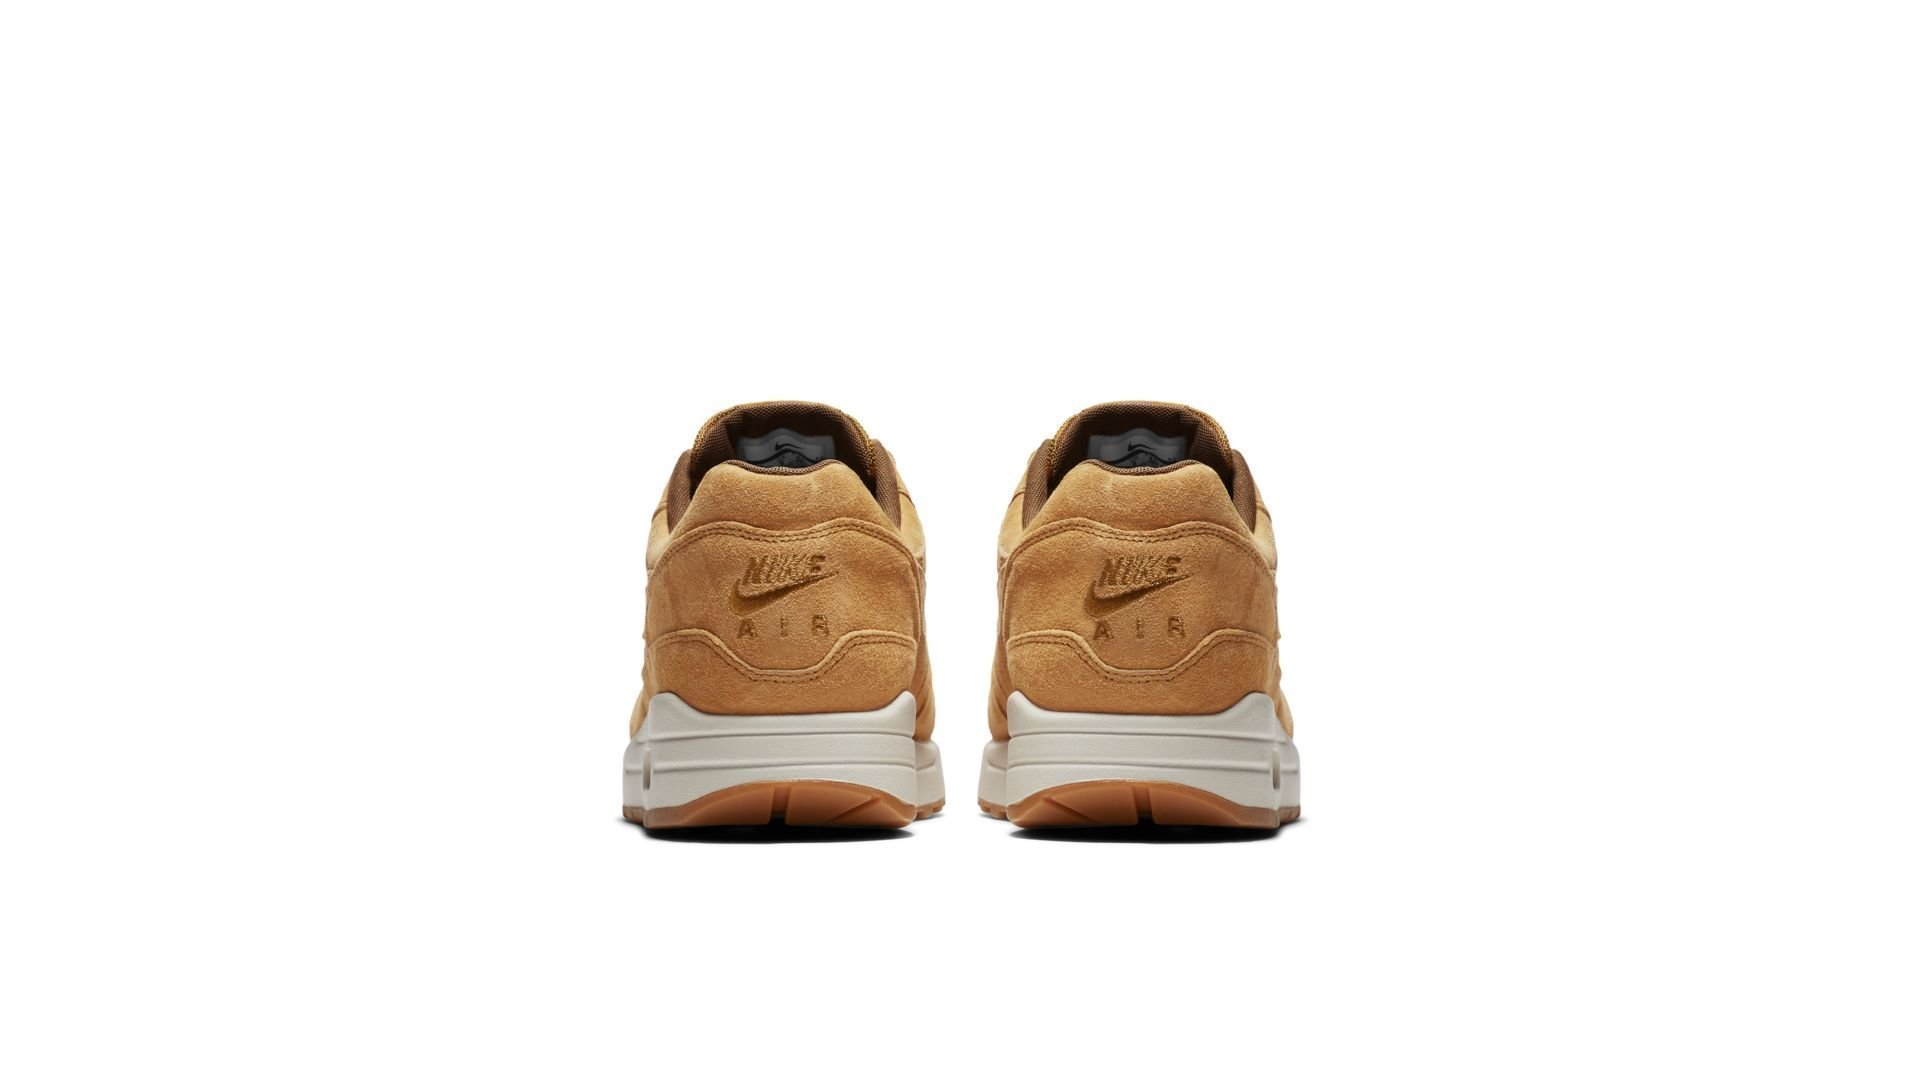 Nike Air Max 1 Wheat (2018) (875844-701)